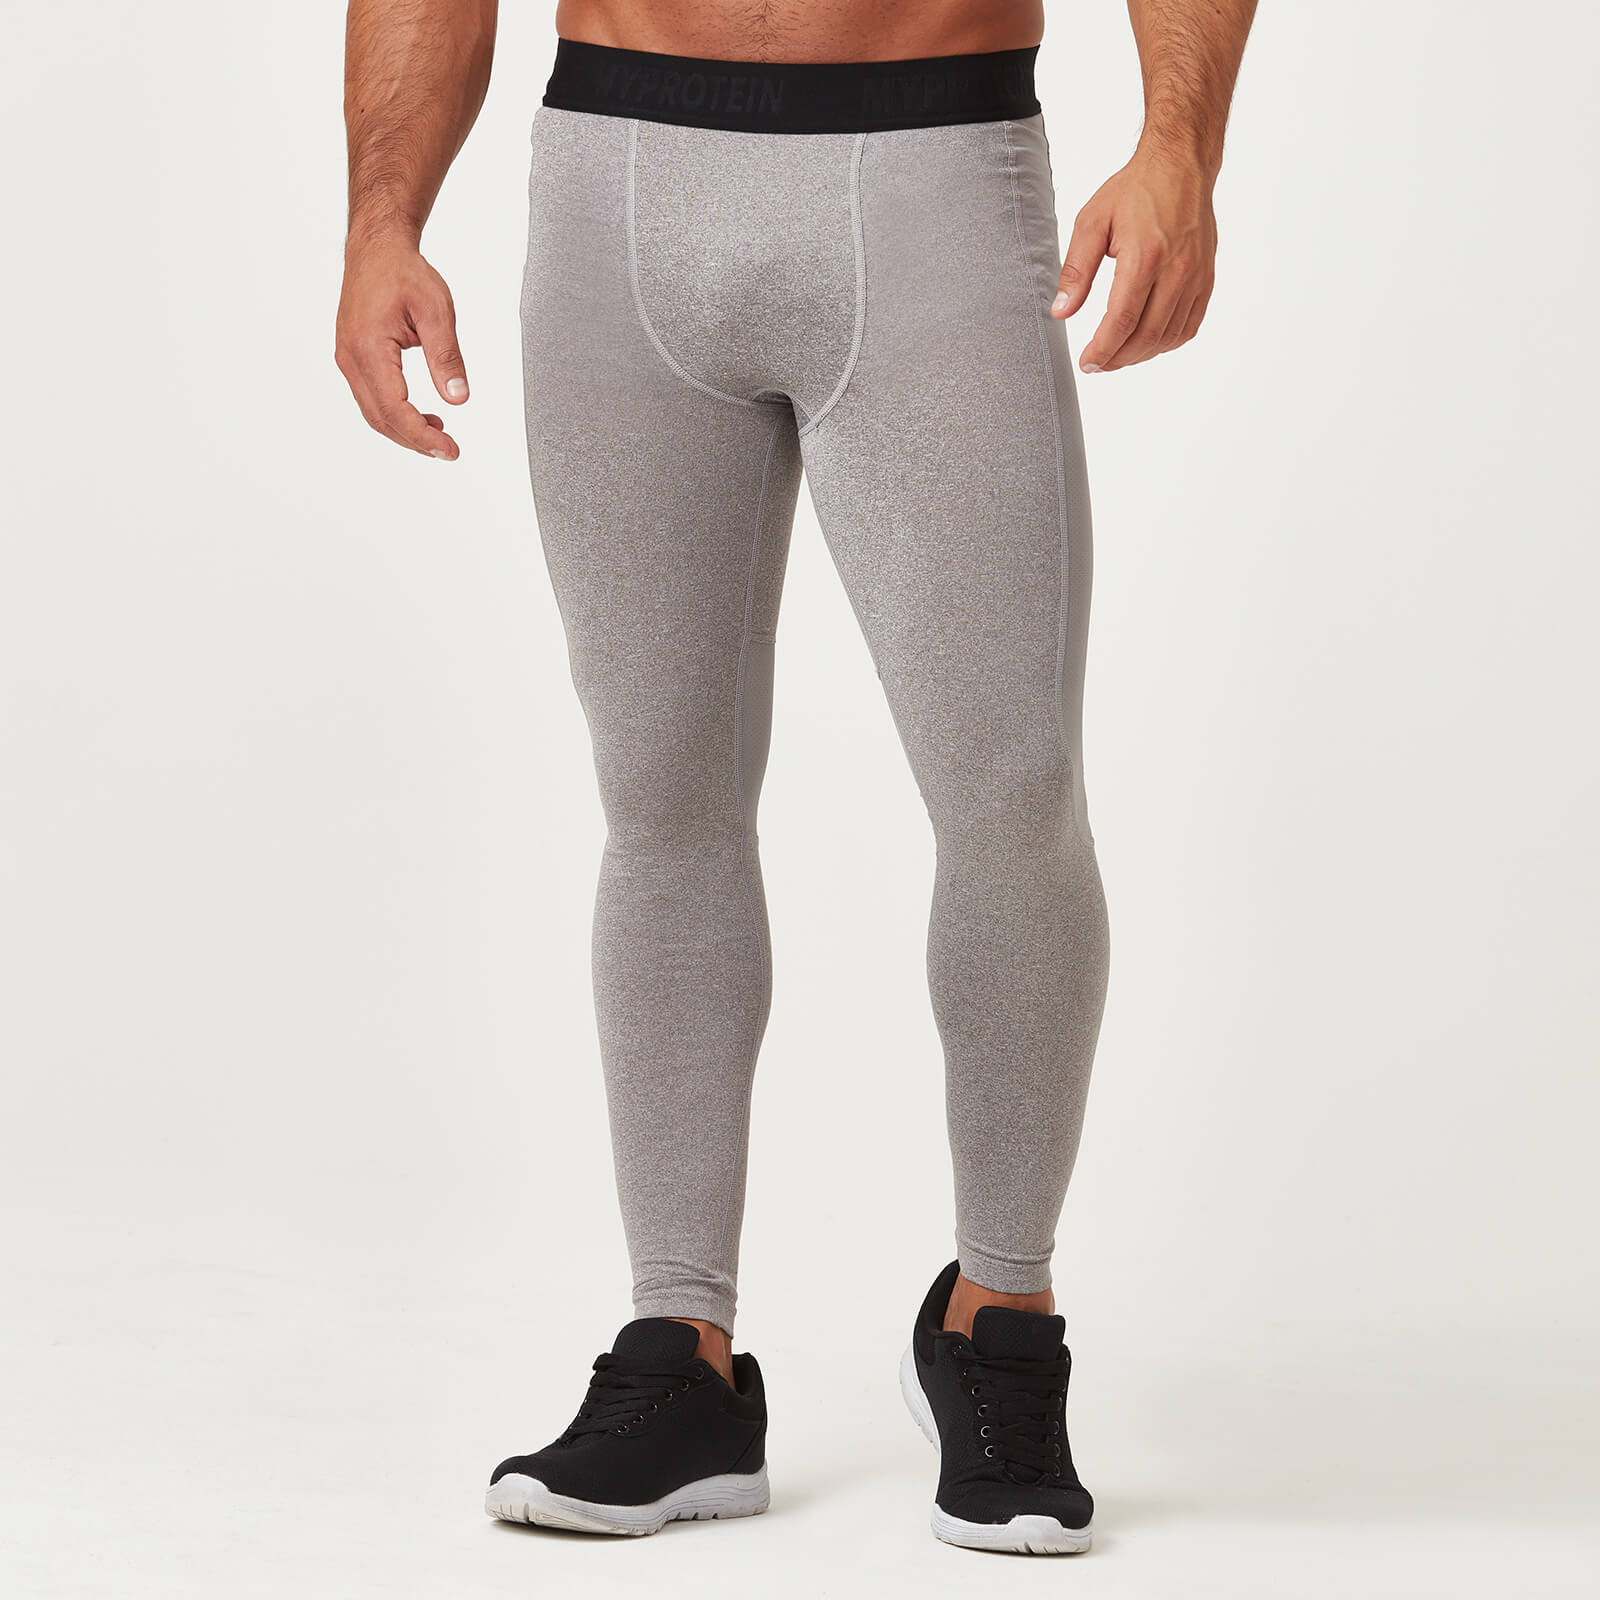 Compression Tights - Grey Marl - S